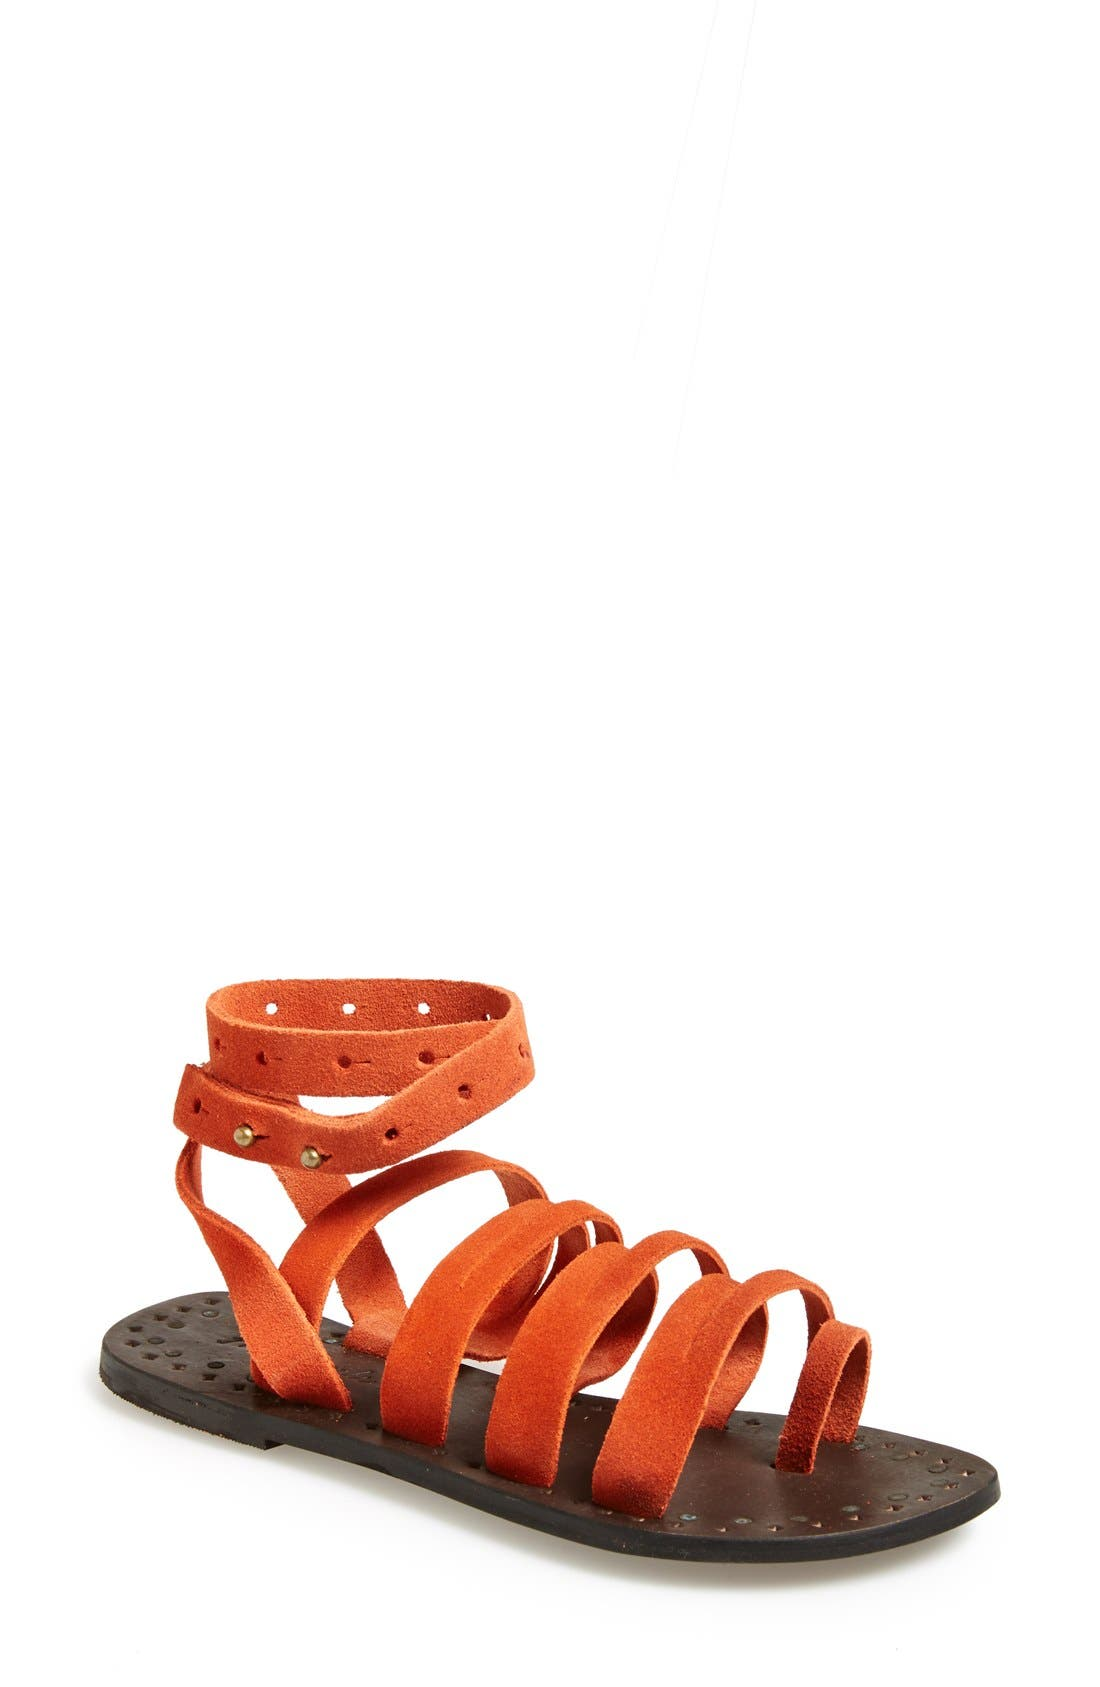 Main Image - Free People 'Sunever' Leather Gladiator Sandal (Women)